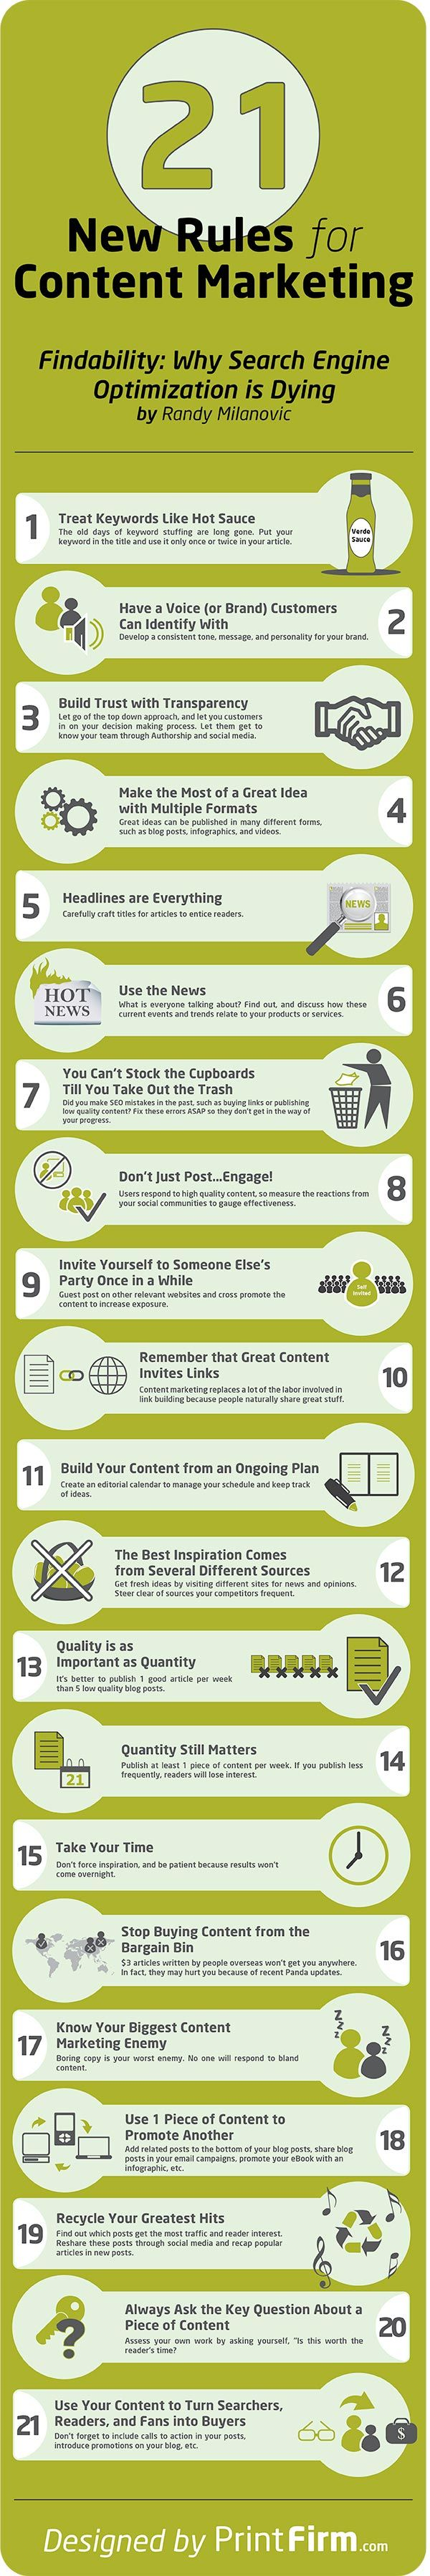 21 New Rules for Content Marketing  4fcb593332ccd8f505c15c8cd27a1067